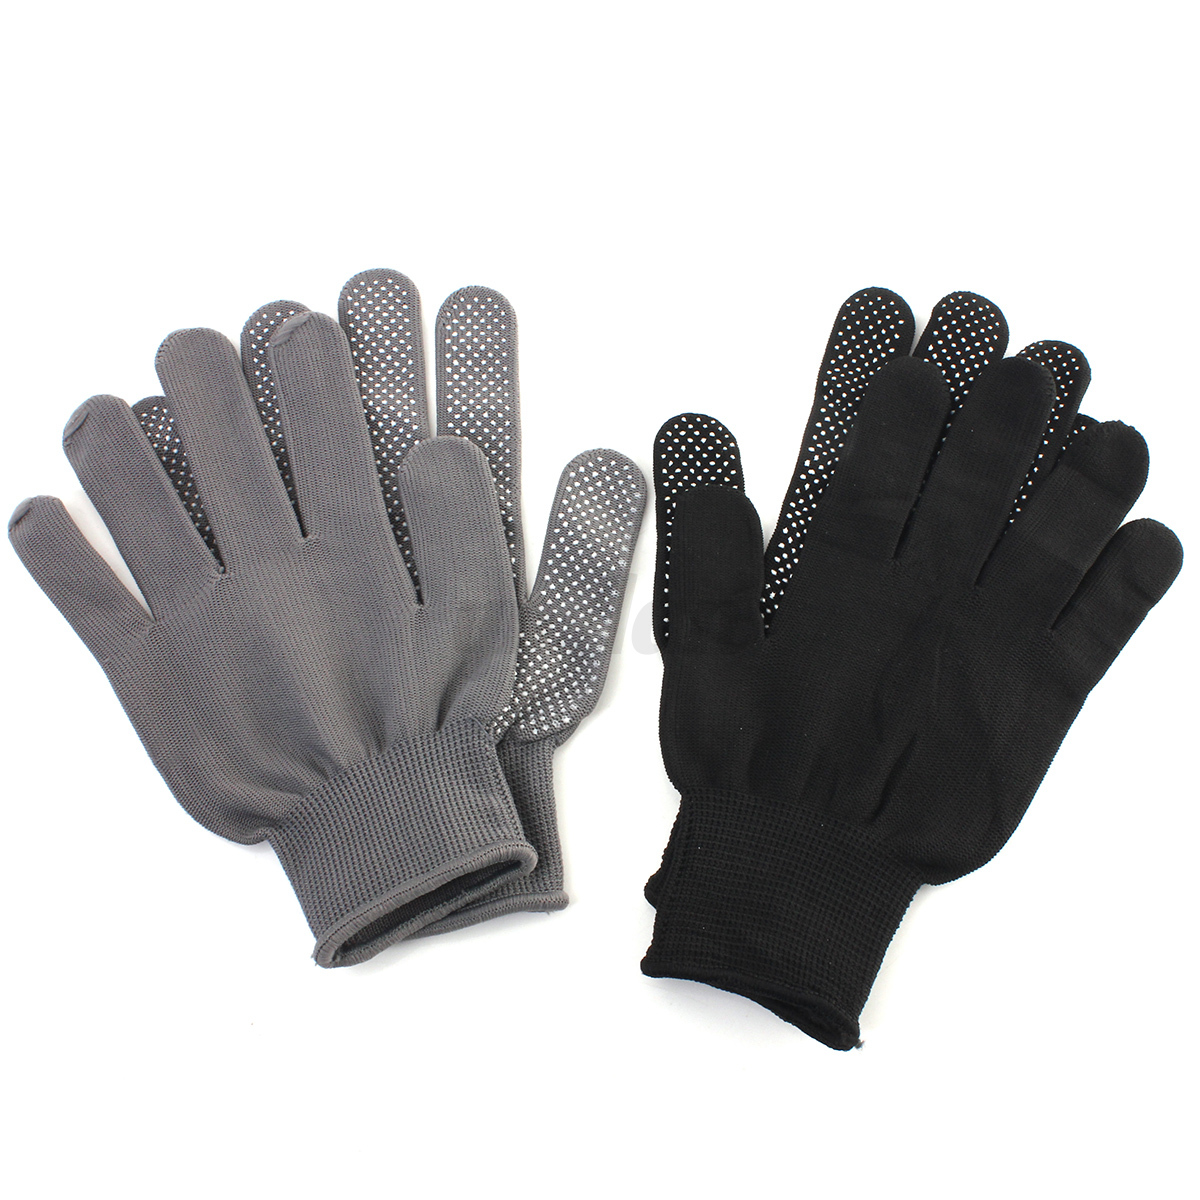 heat glove for hair styling 1 pair heat proof resistant protective glove hair curler 6999